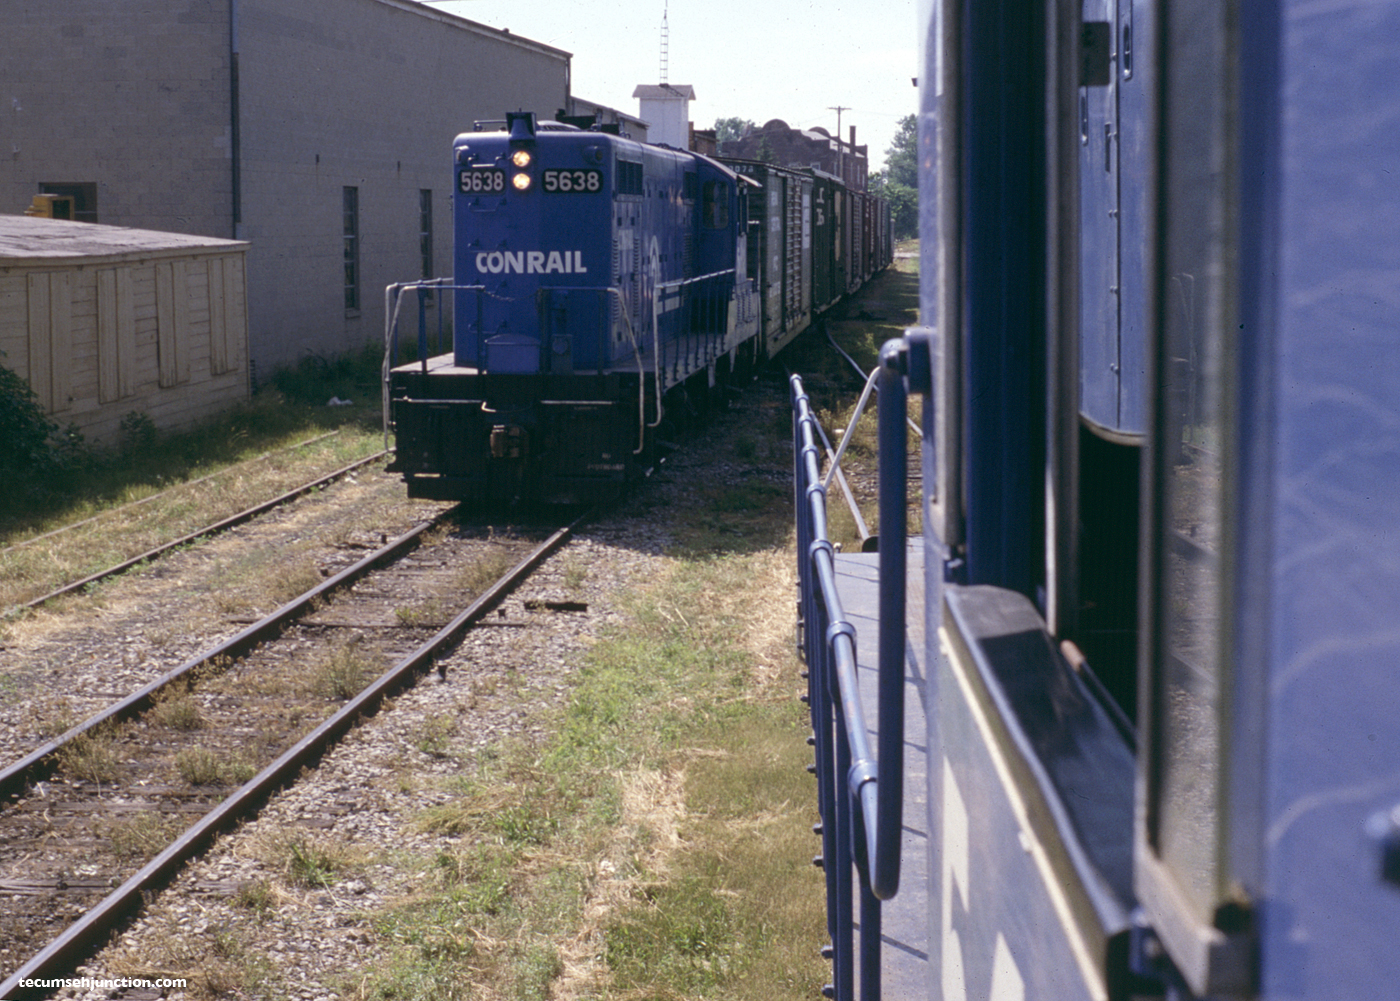 Conrail #5638 at Blissfield, MI on 26 June 1979